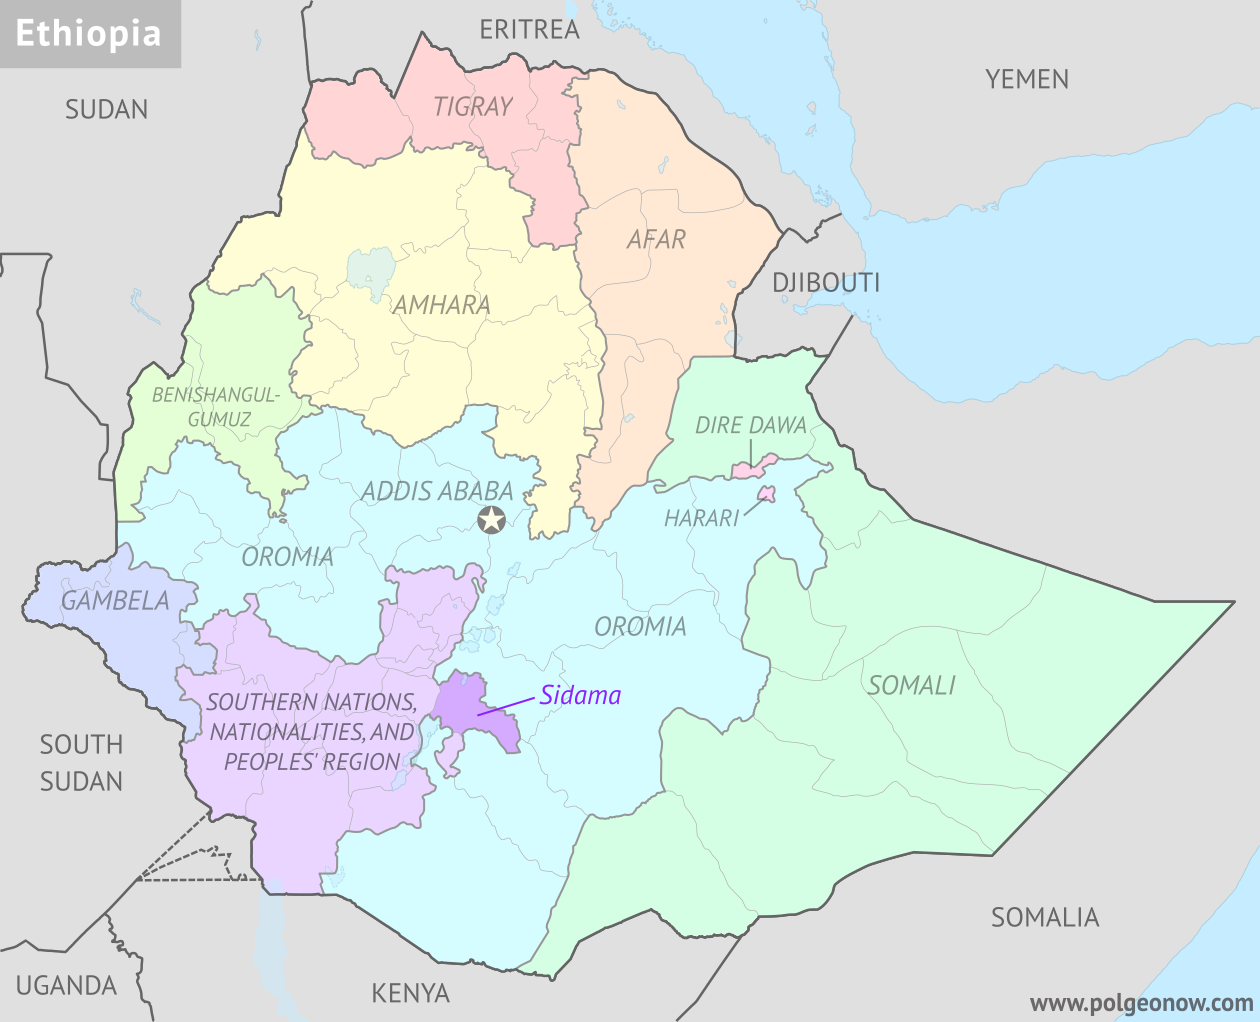 Political map of Ethiopia's regional states, highlighting Sidama Zone, which is voting in a referendum in November 2019 on whether to split off from the Southern Nations, Nationalities, and People's Region (SNNPR) to become a new regional state.